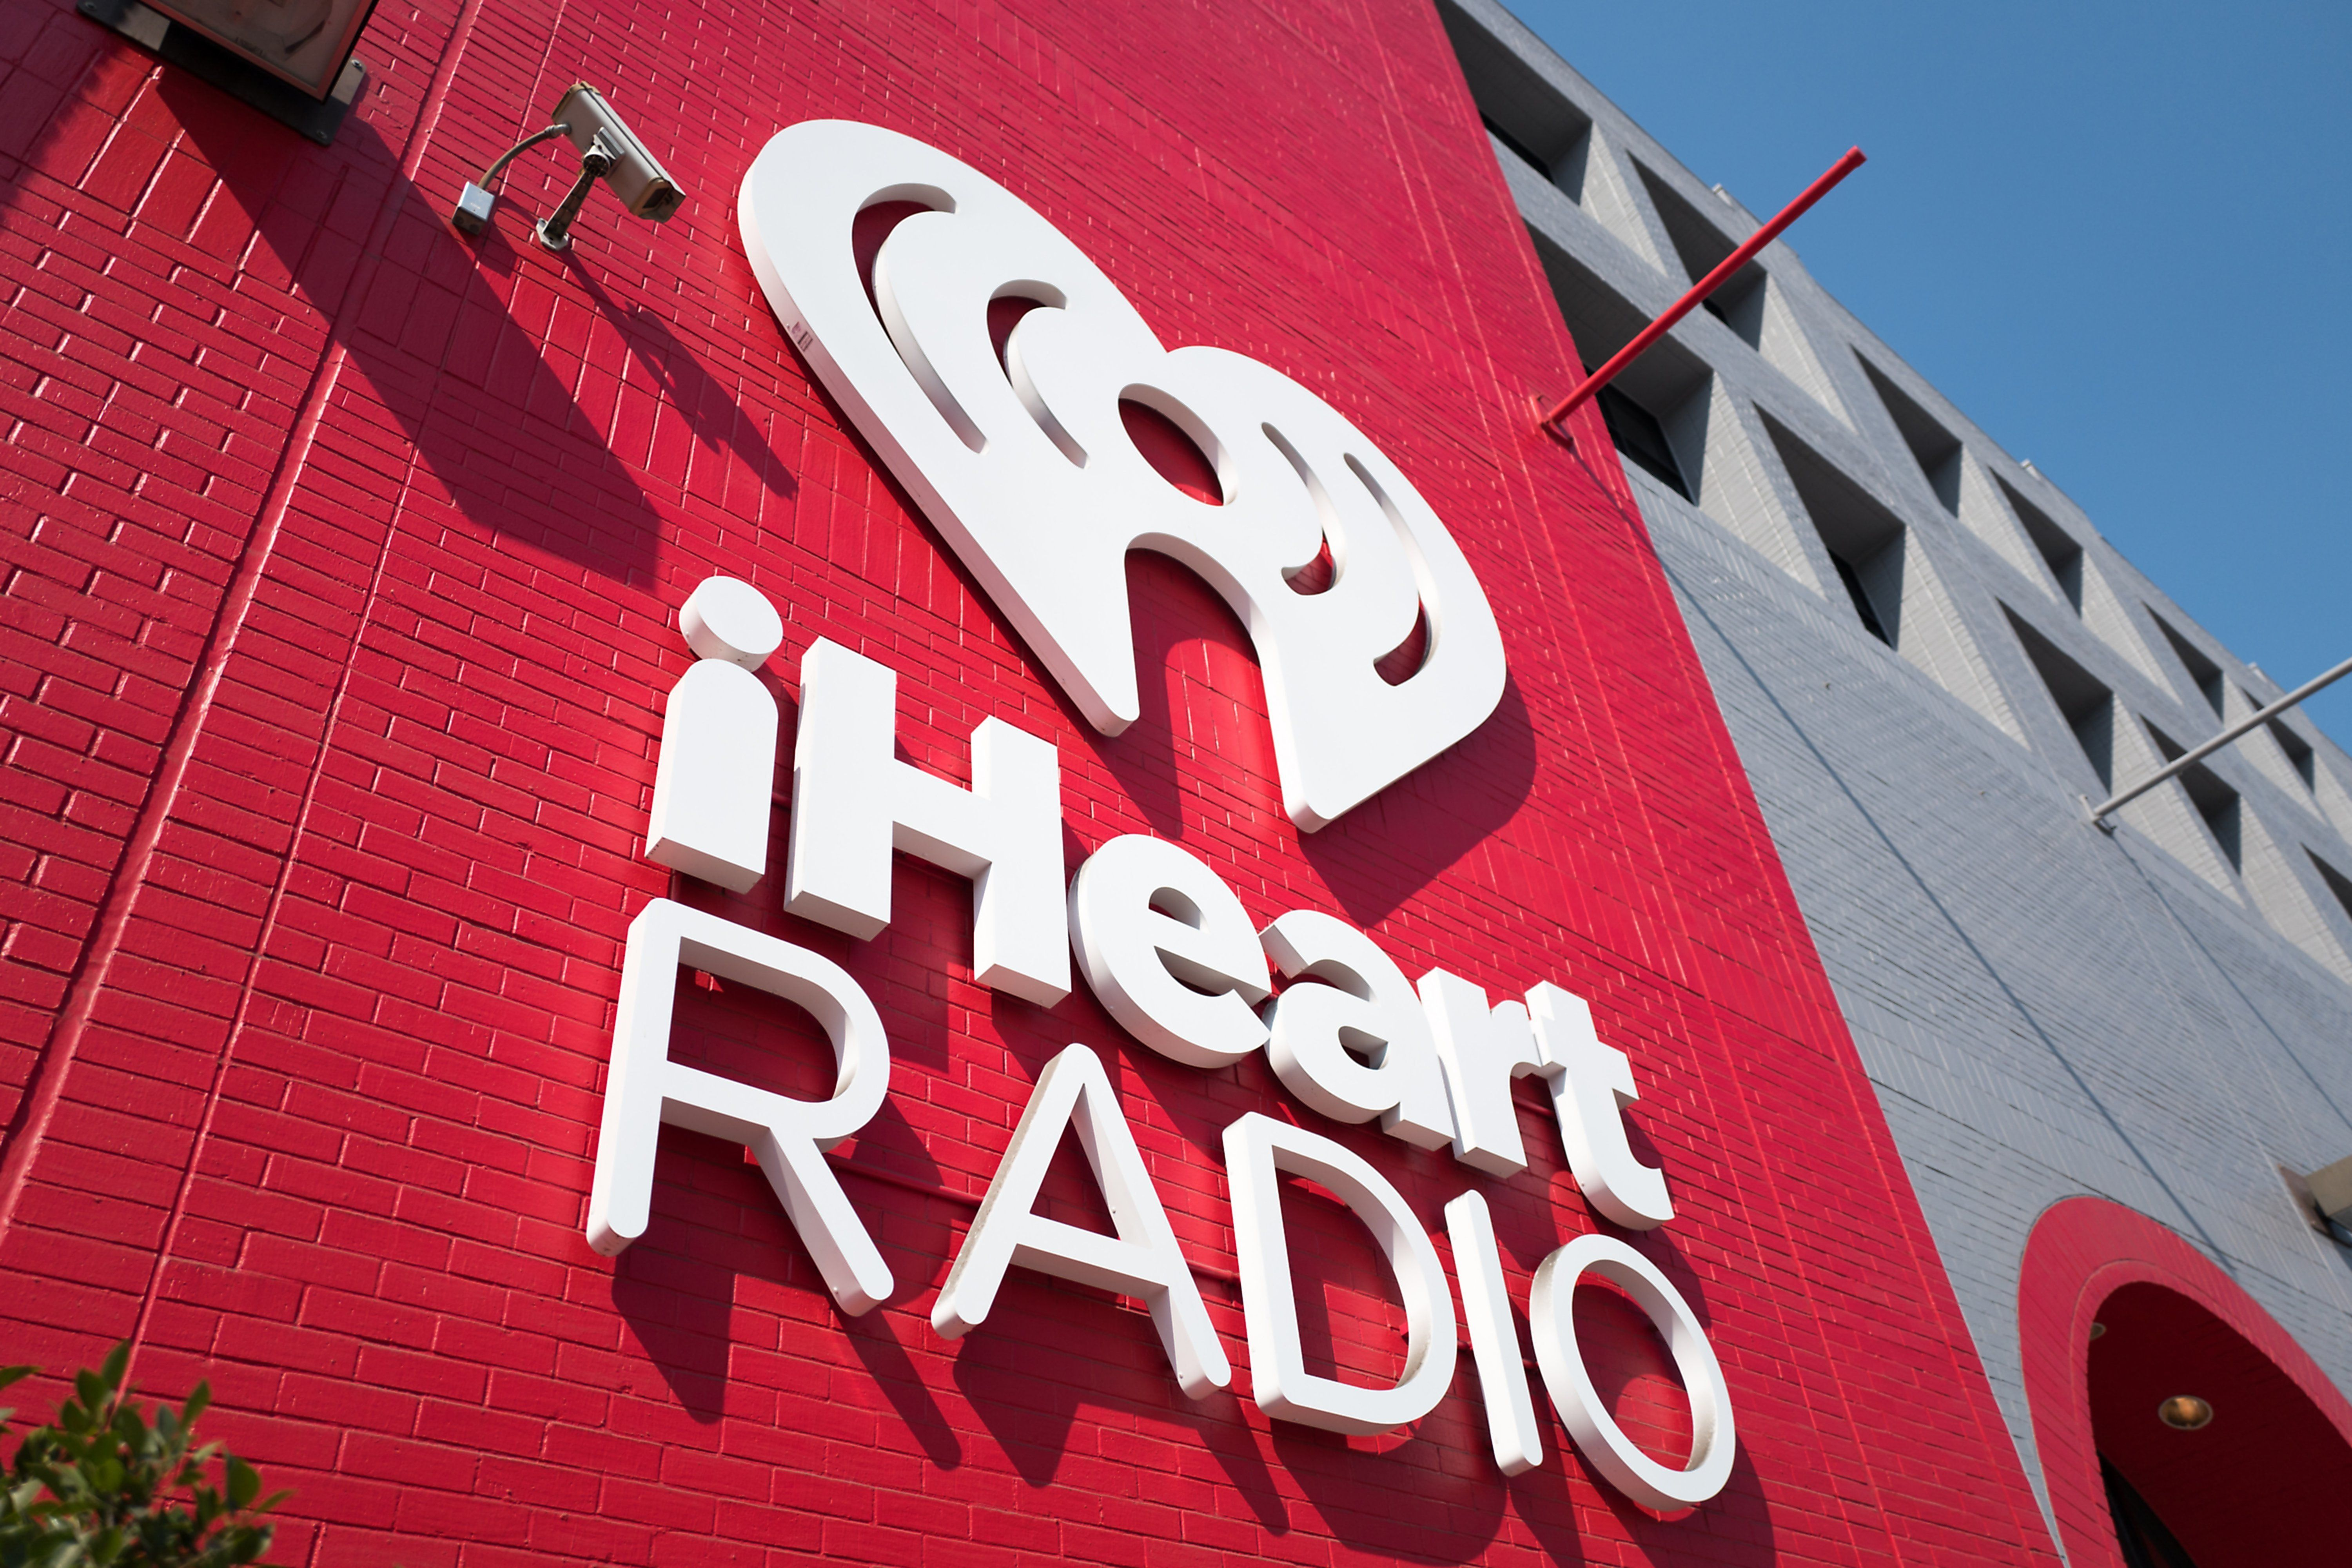 Sign for iHeartRadio music radio, part of the iHeartMedia company, at the company's local headquarters in the South of Market (SoMa) neighborhood of San Francisco, California, October 13, 2017. (Photo by Smith Collection/Gado/Getty Images)